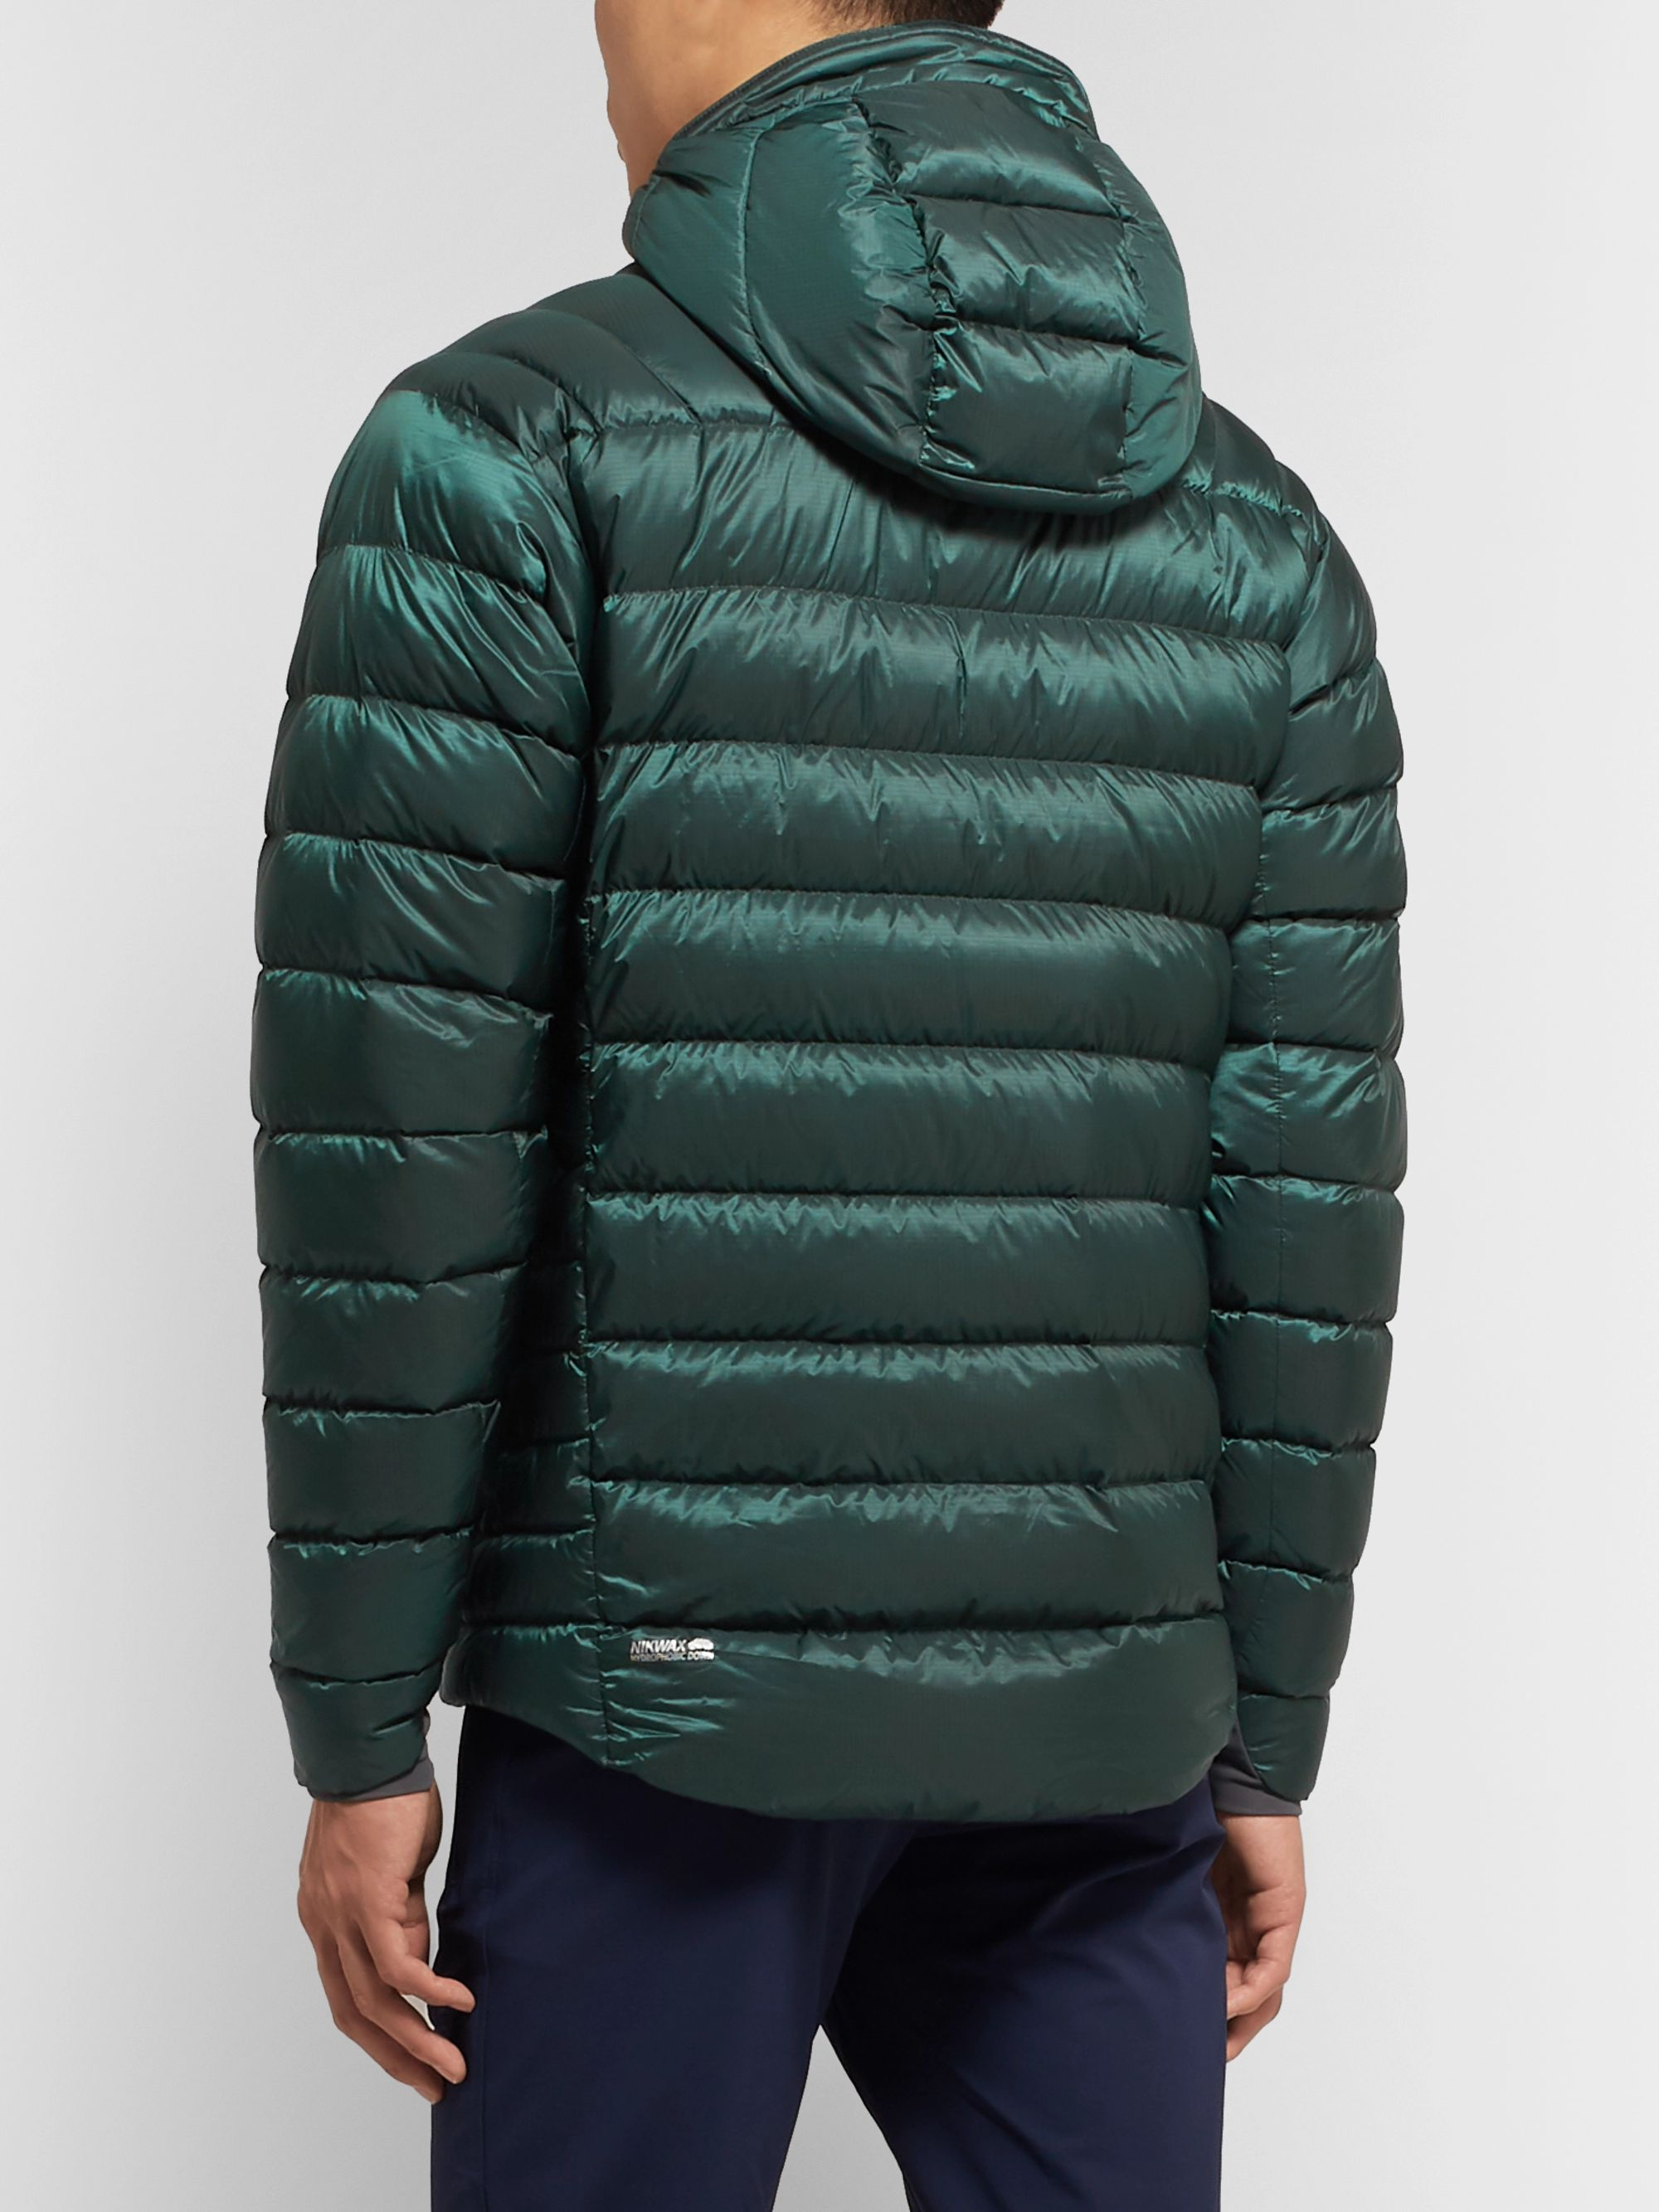 Rab Electron Quilted Pertex Quantum Pro Hooded Down Jacket